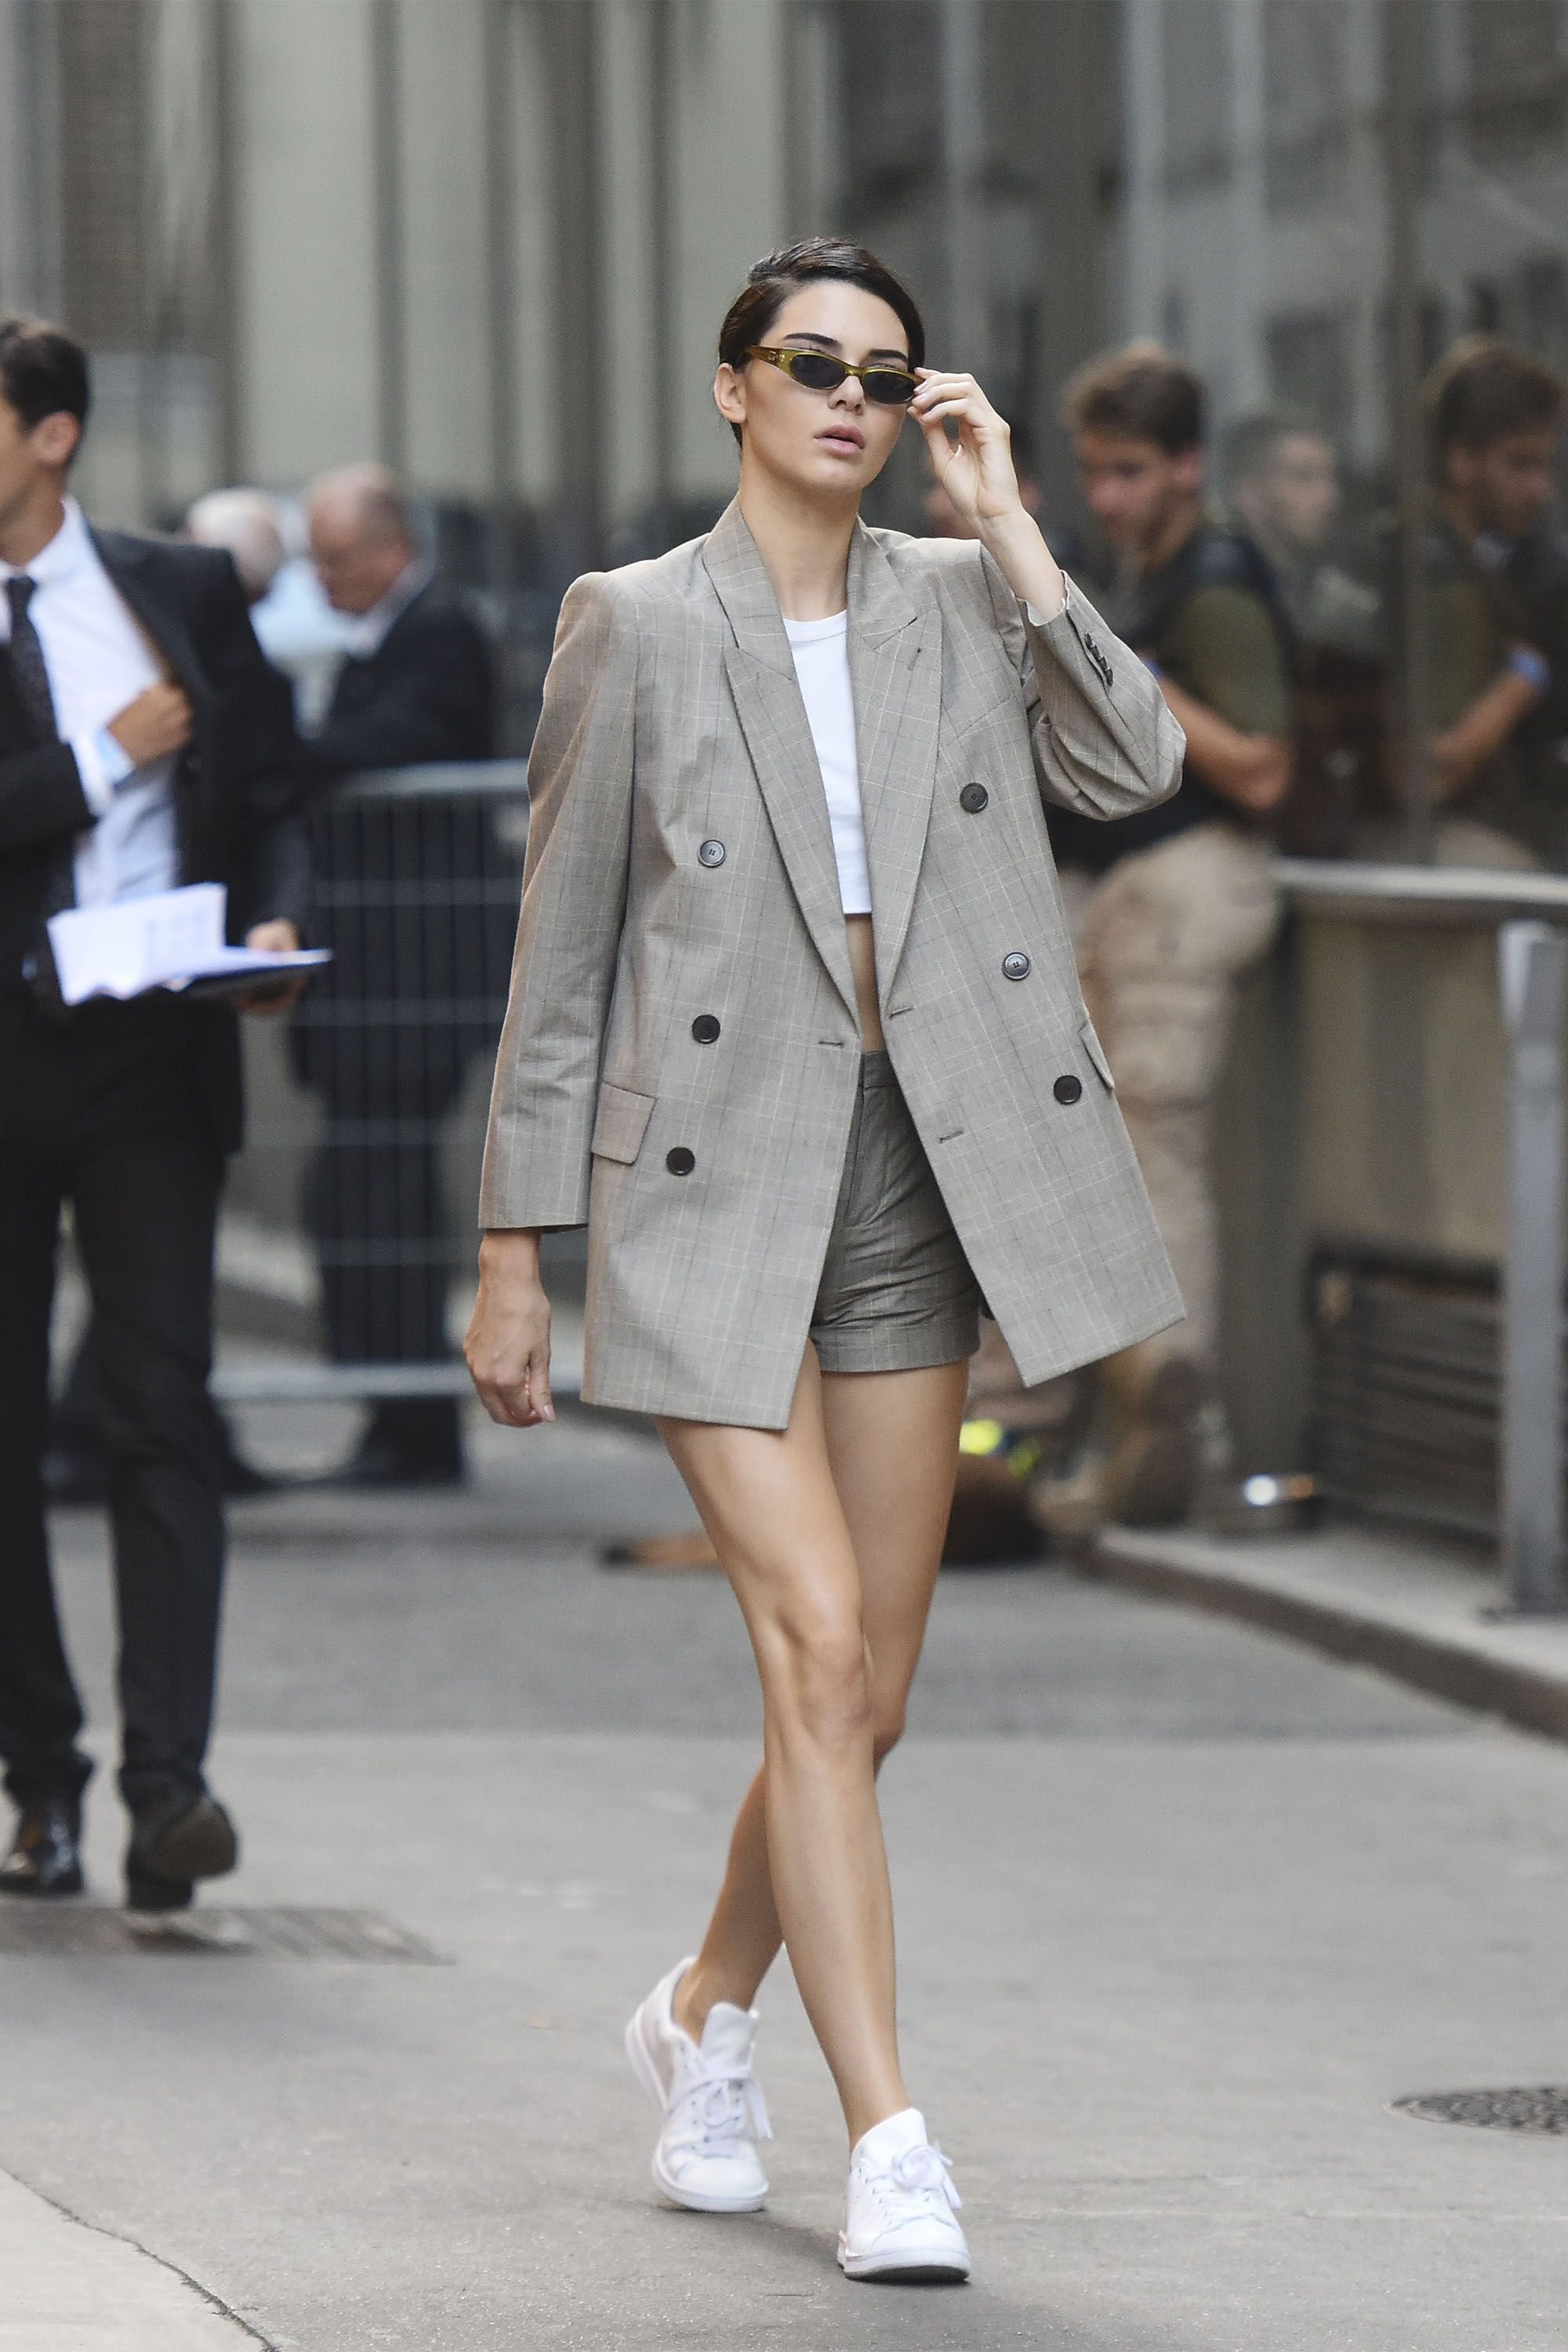 45b88c35cf41 Kendall Jenner makes us believe in the shorts suit by pairing an oversized  blazer with high-waisted shorts and Adidas Stan Smith sneakers.